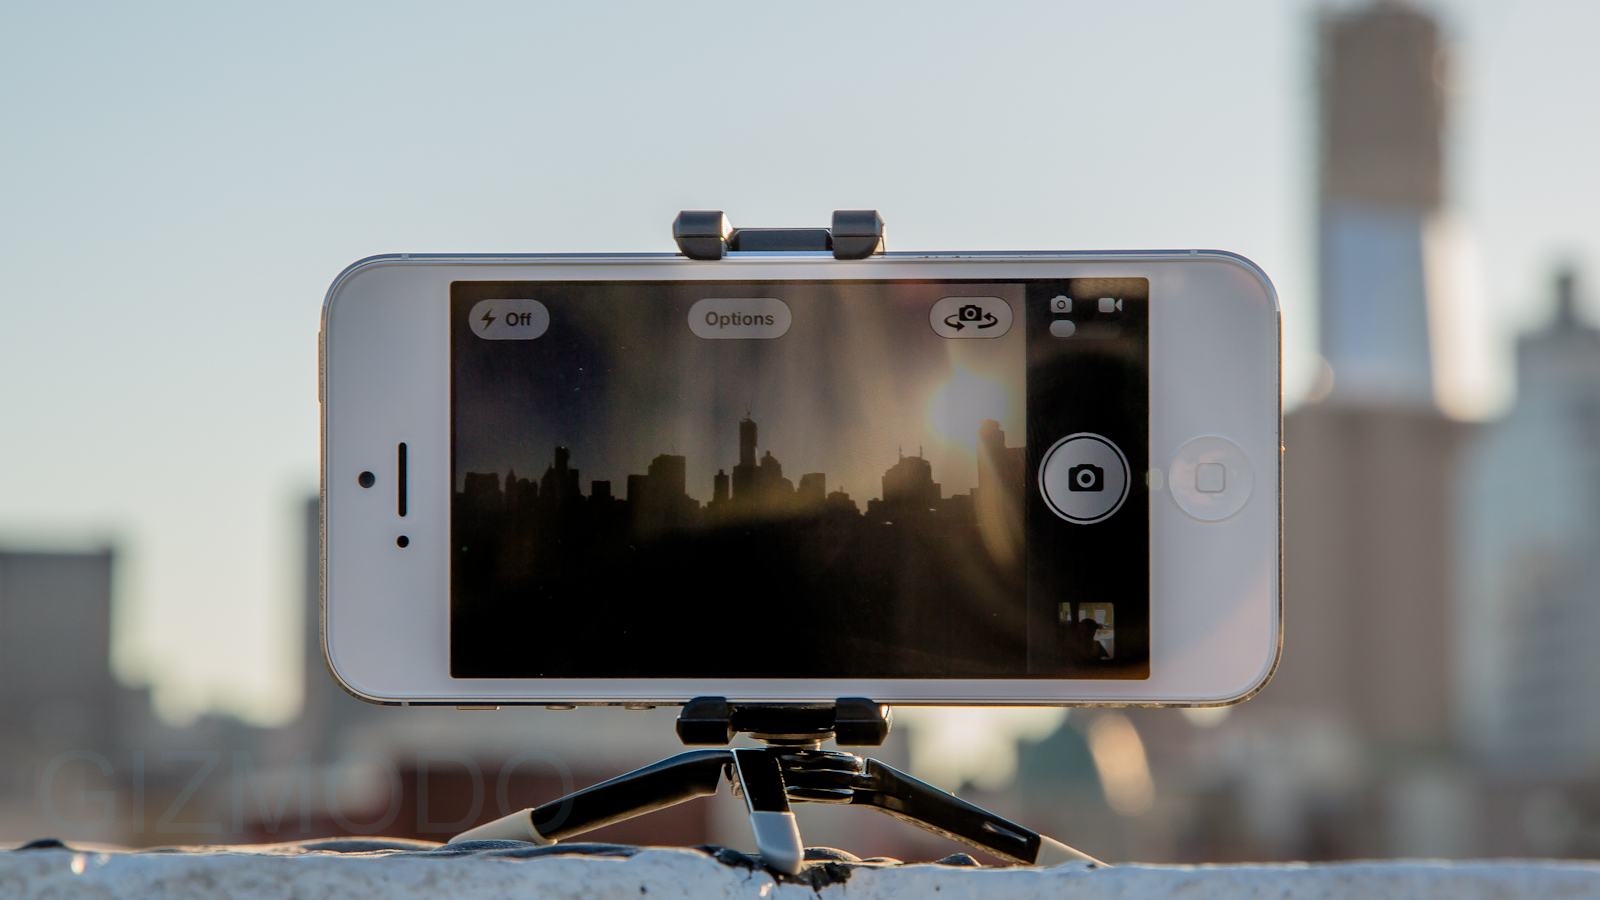 How to take a picture while recording video on your iPhone